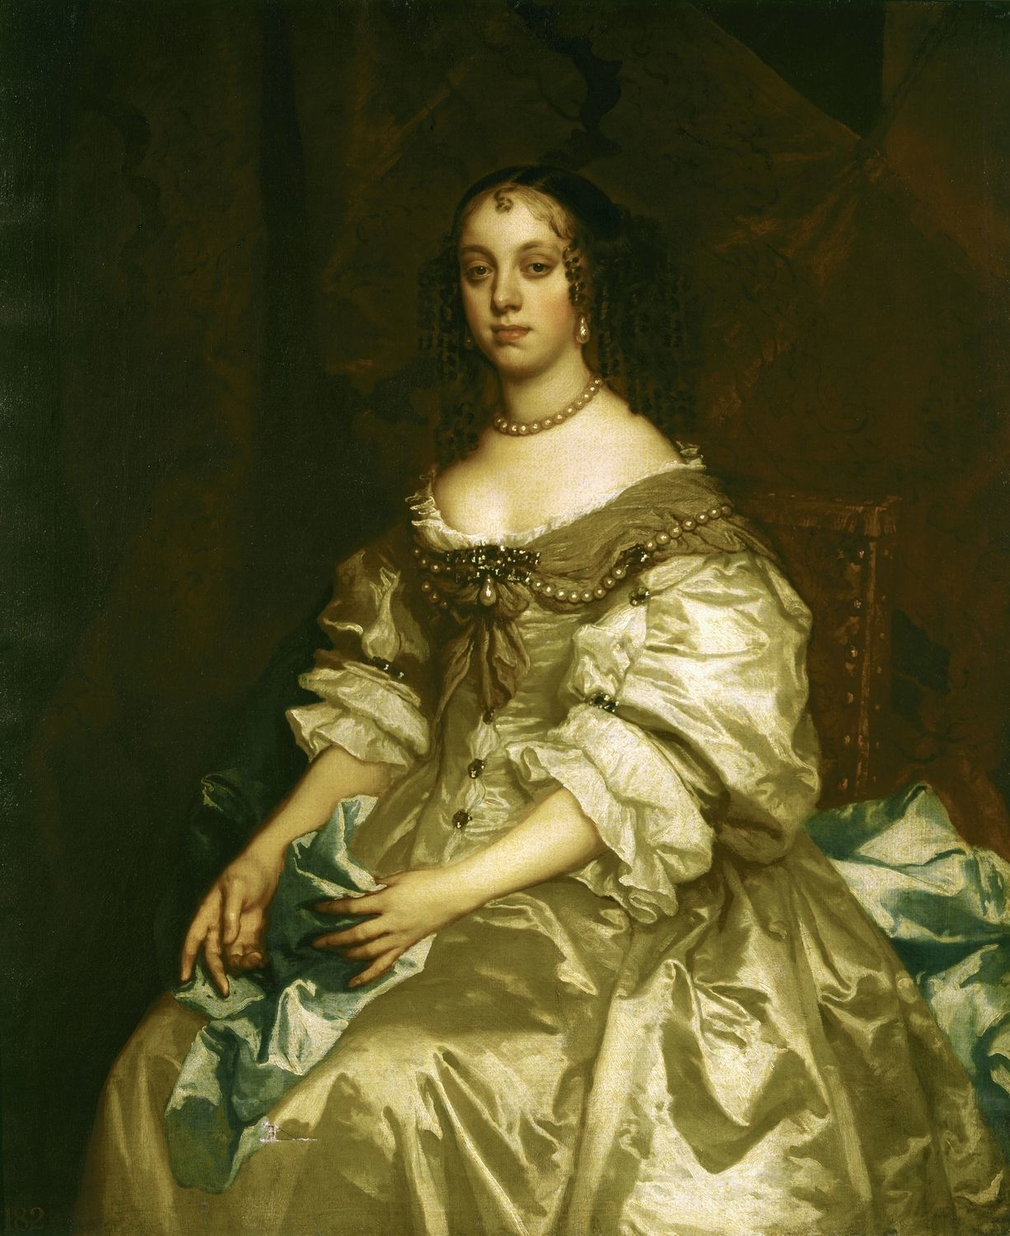 Catherine of Braganza (1638-1705) was the daughter of John IV of Portugal who became Charles II's Queen in 1662. This three-quarter-length portrait was painted, presumably for the sitter,soon after her arrival in England. It is the original for many